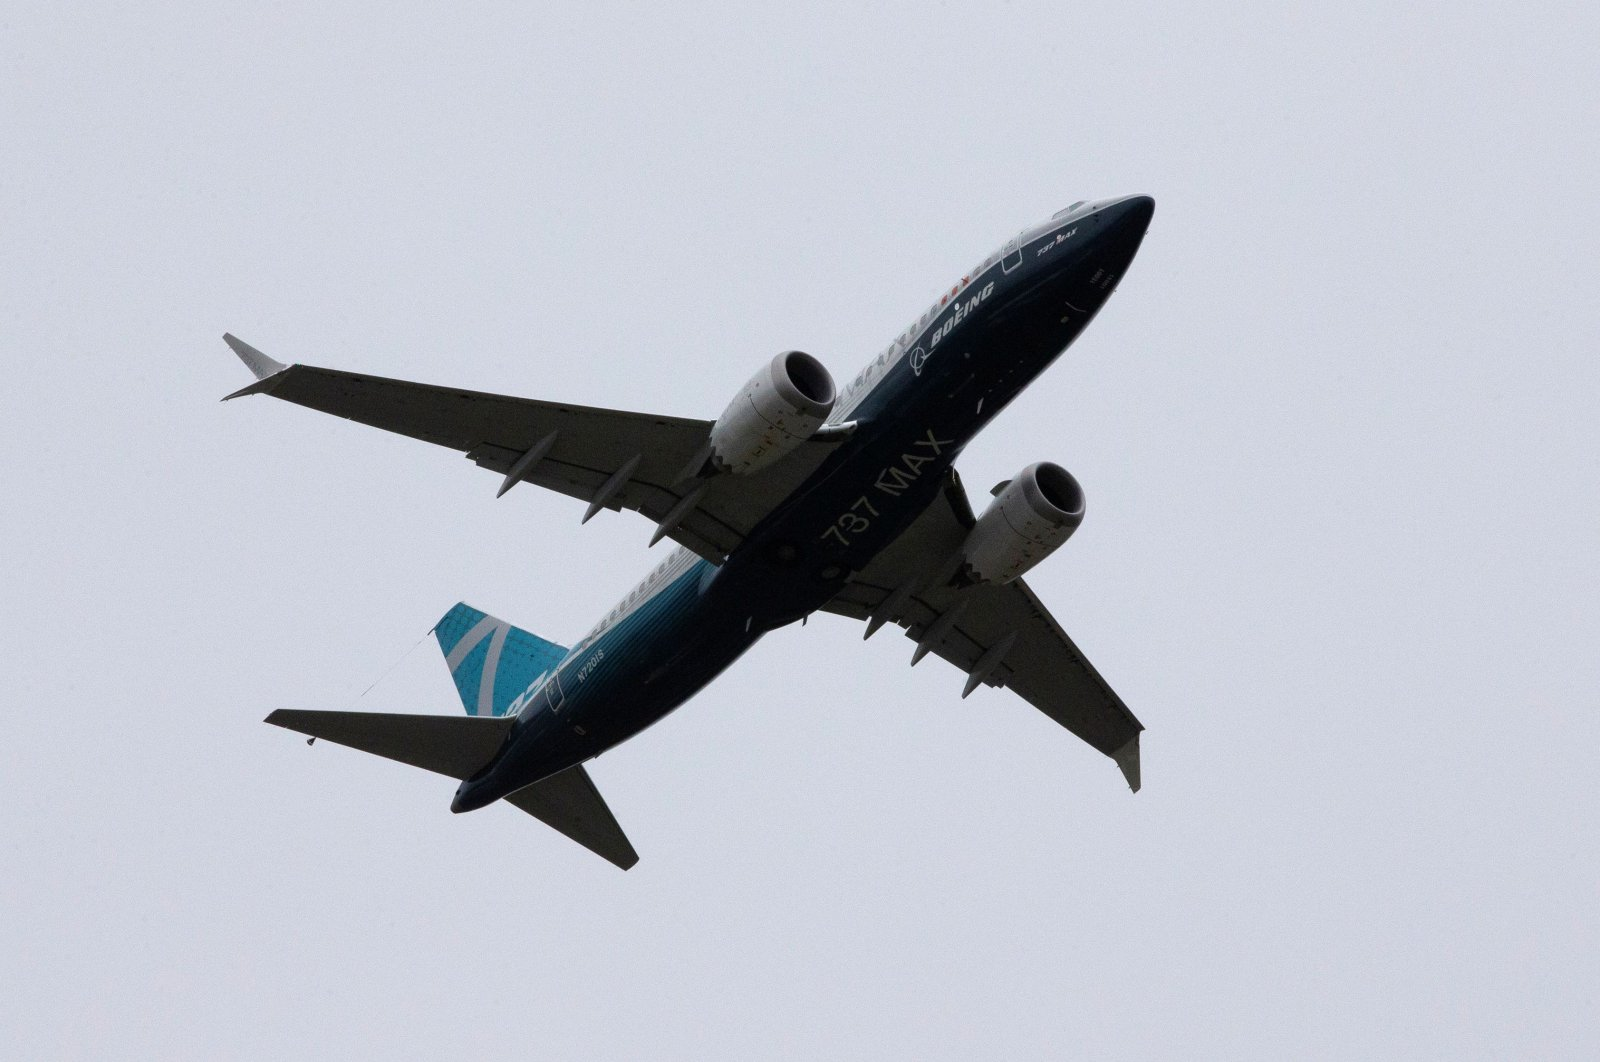 A Boeing 737 MAX airplane takes off on a test flight from Boeing Field in Seattle, Washington, U.S. June 29, 2020. (Reuters Photo)